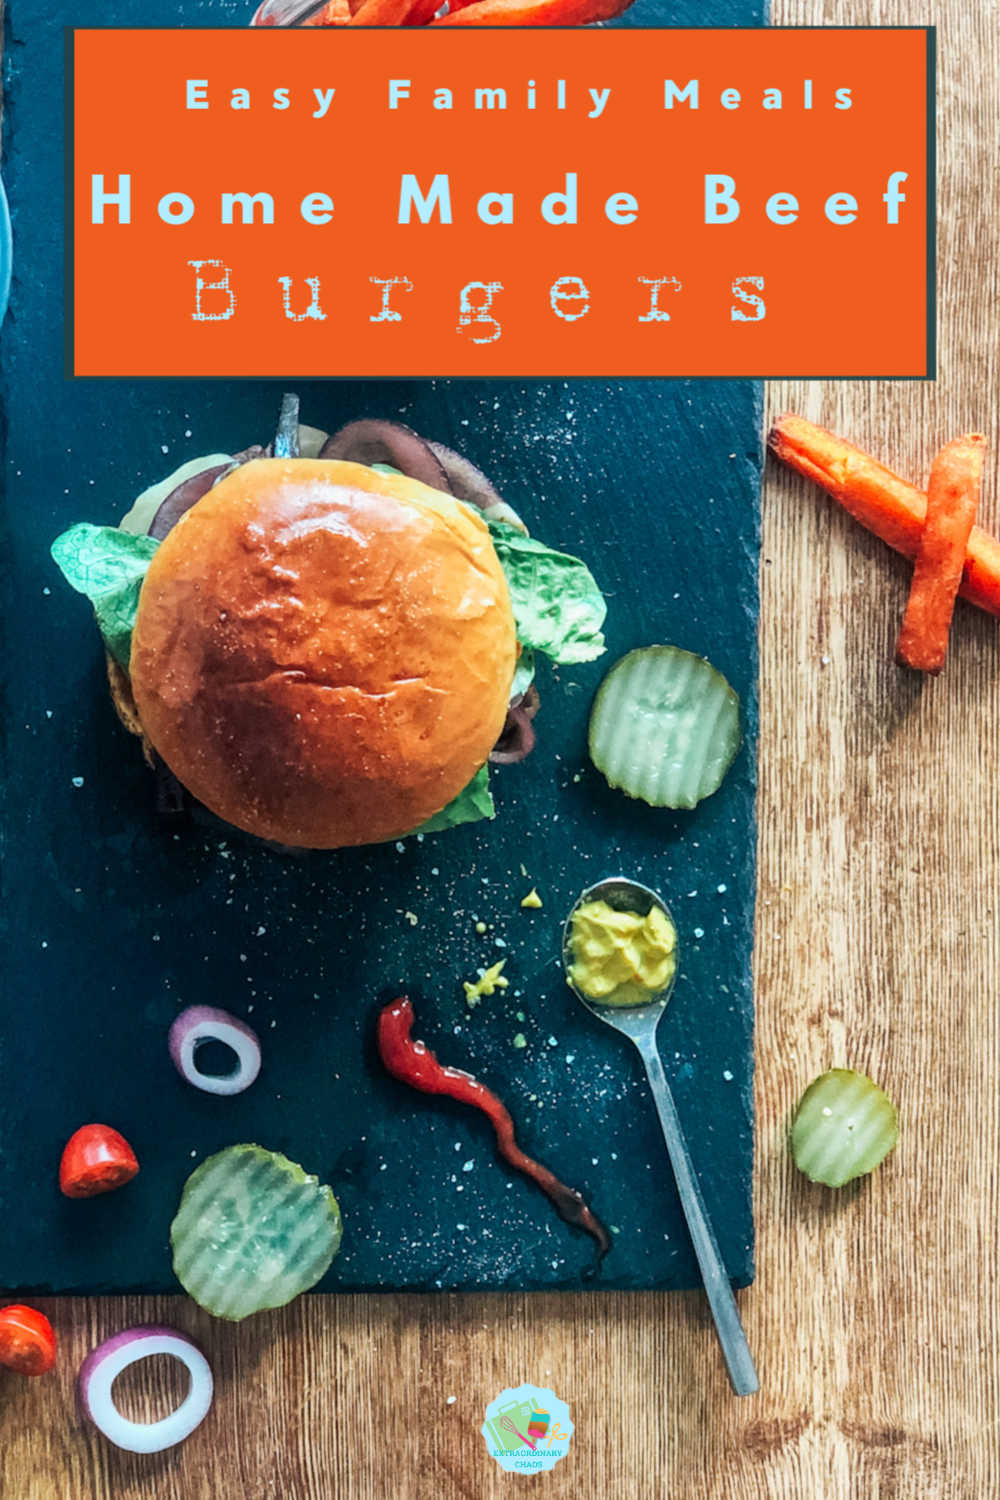 Home Made Beef Burger Patty Recipe this easy recipe is made with fresh beef